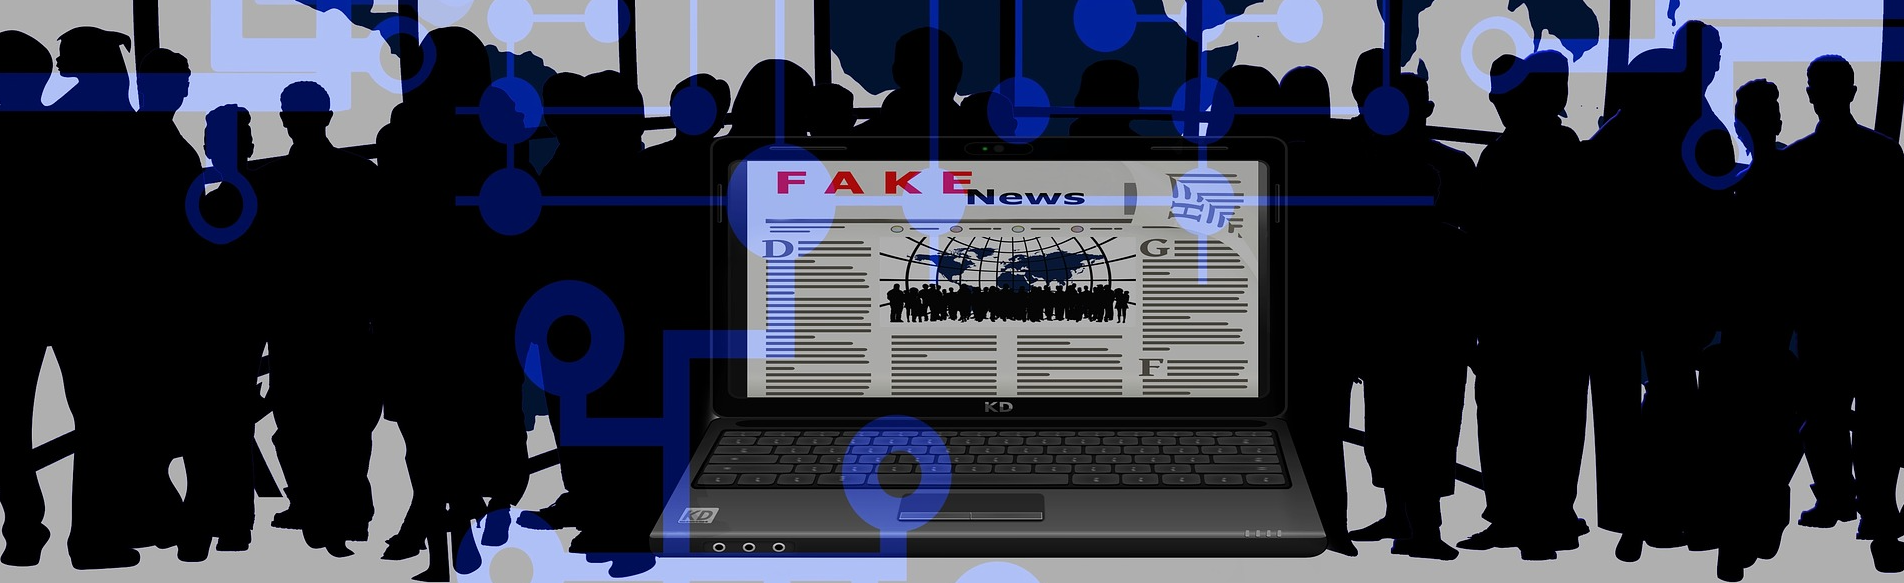 We Need Ethics, Not Regulation, to Counter Fake News